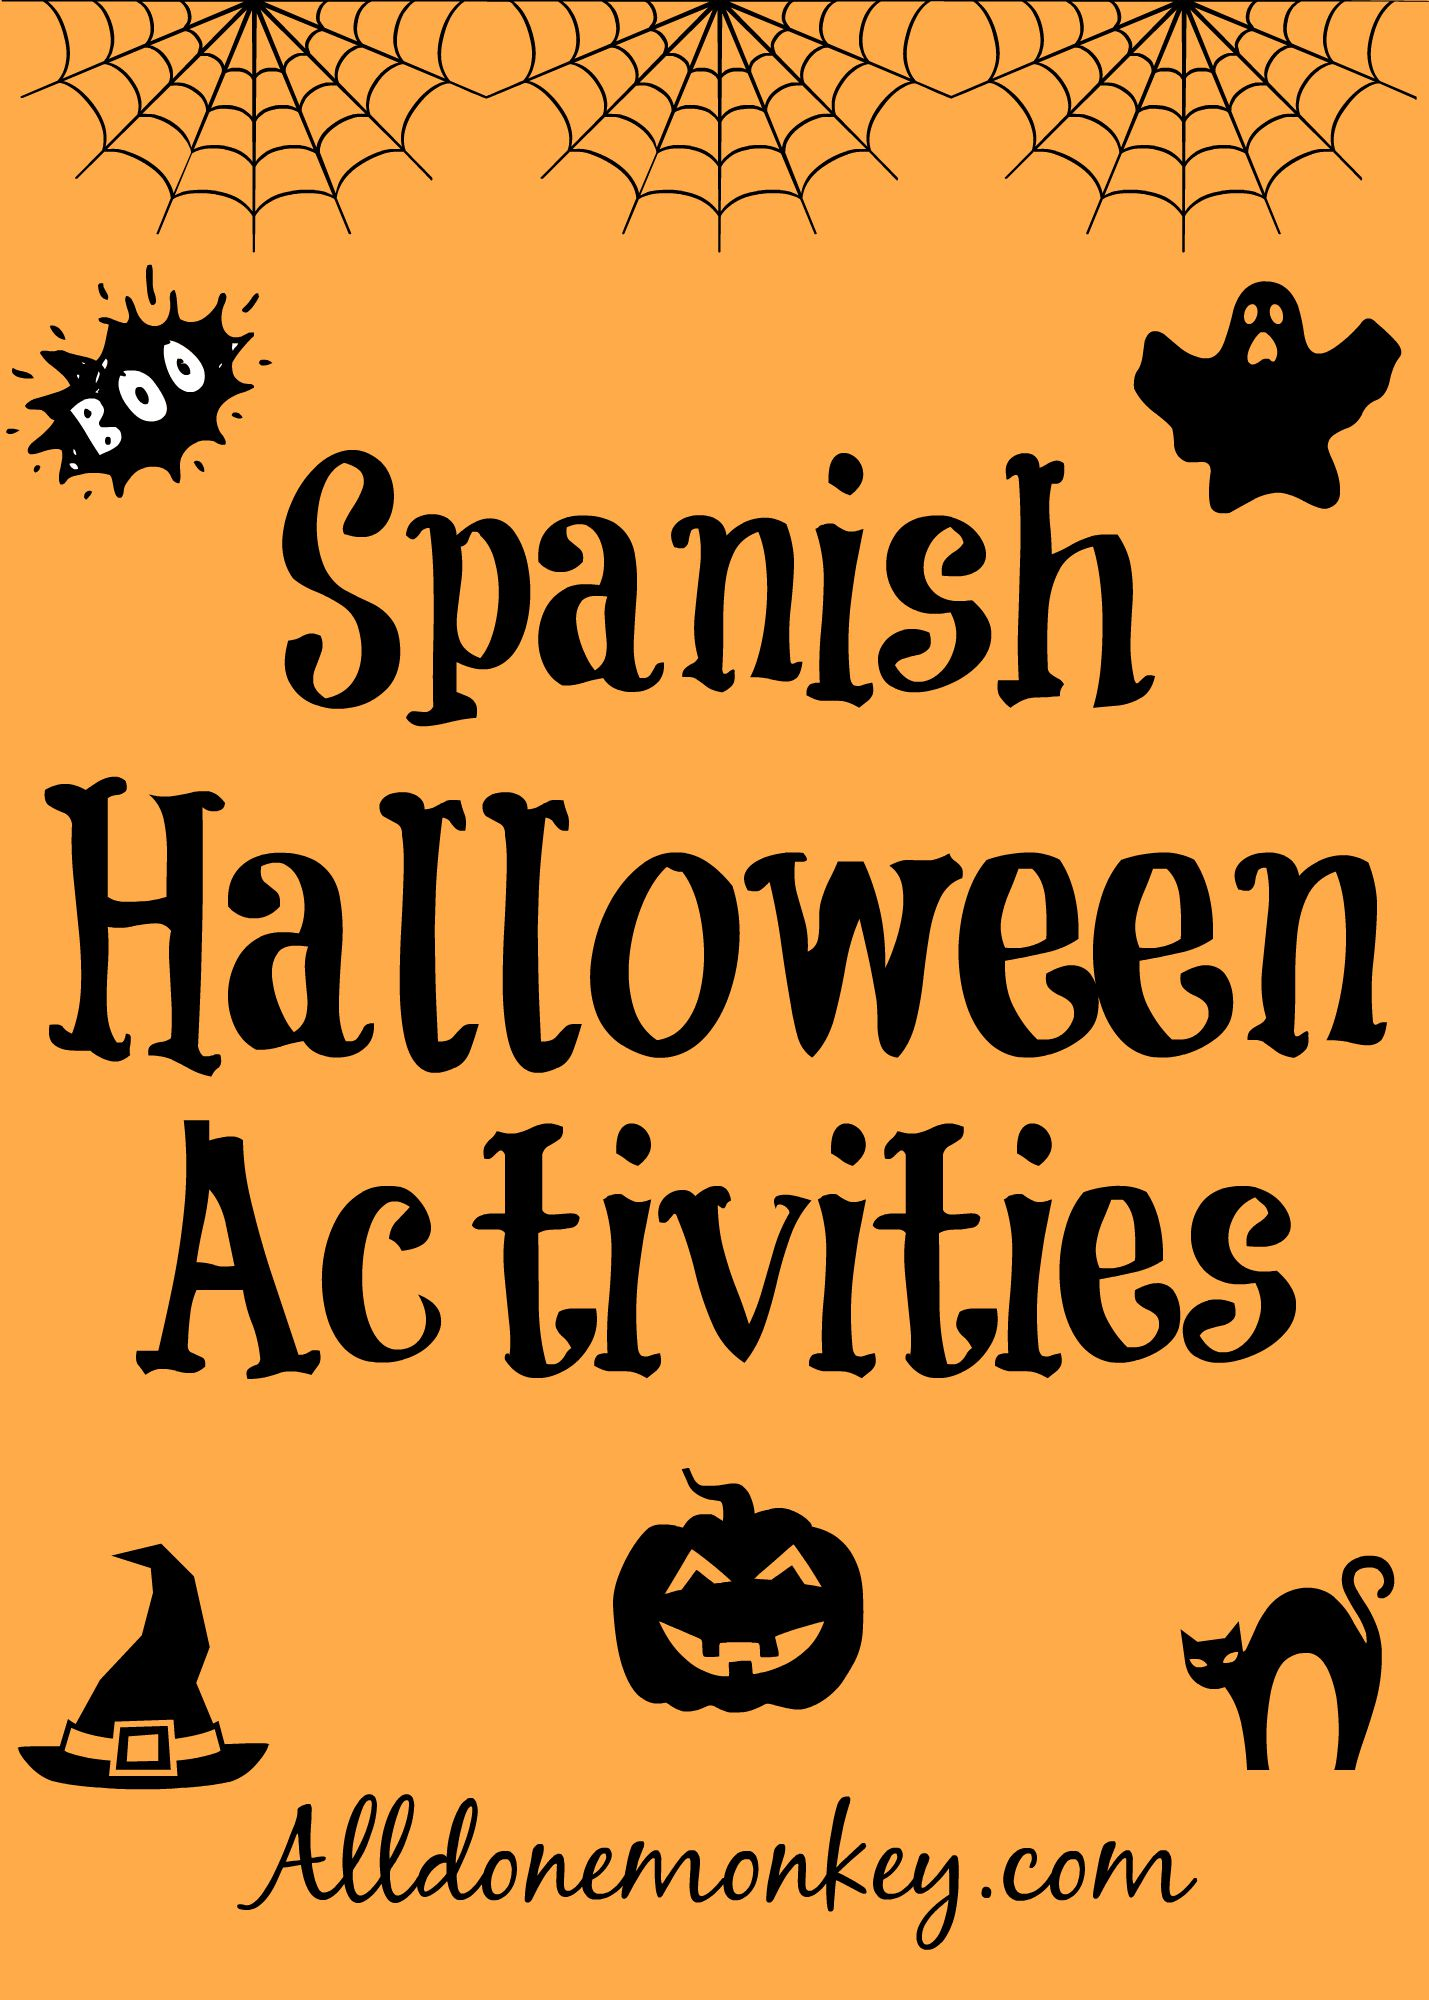 Spanish Halloween Activities | Alldonemonkey.com